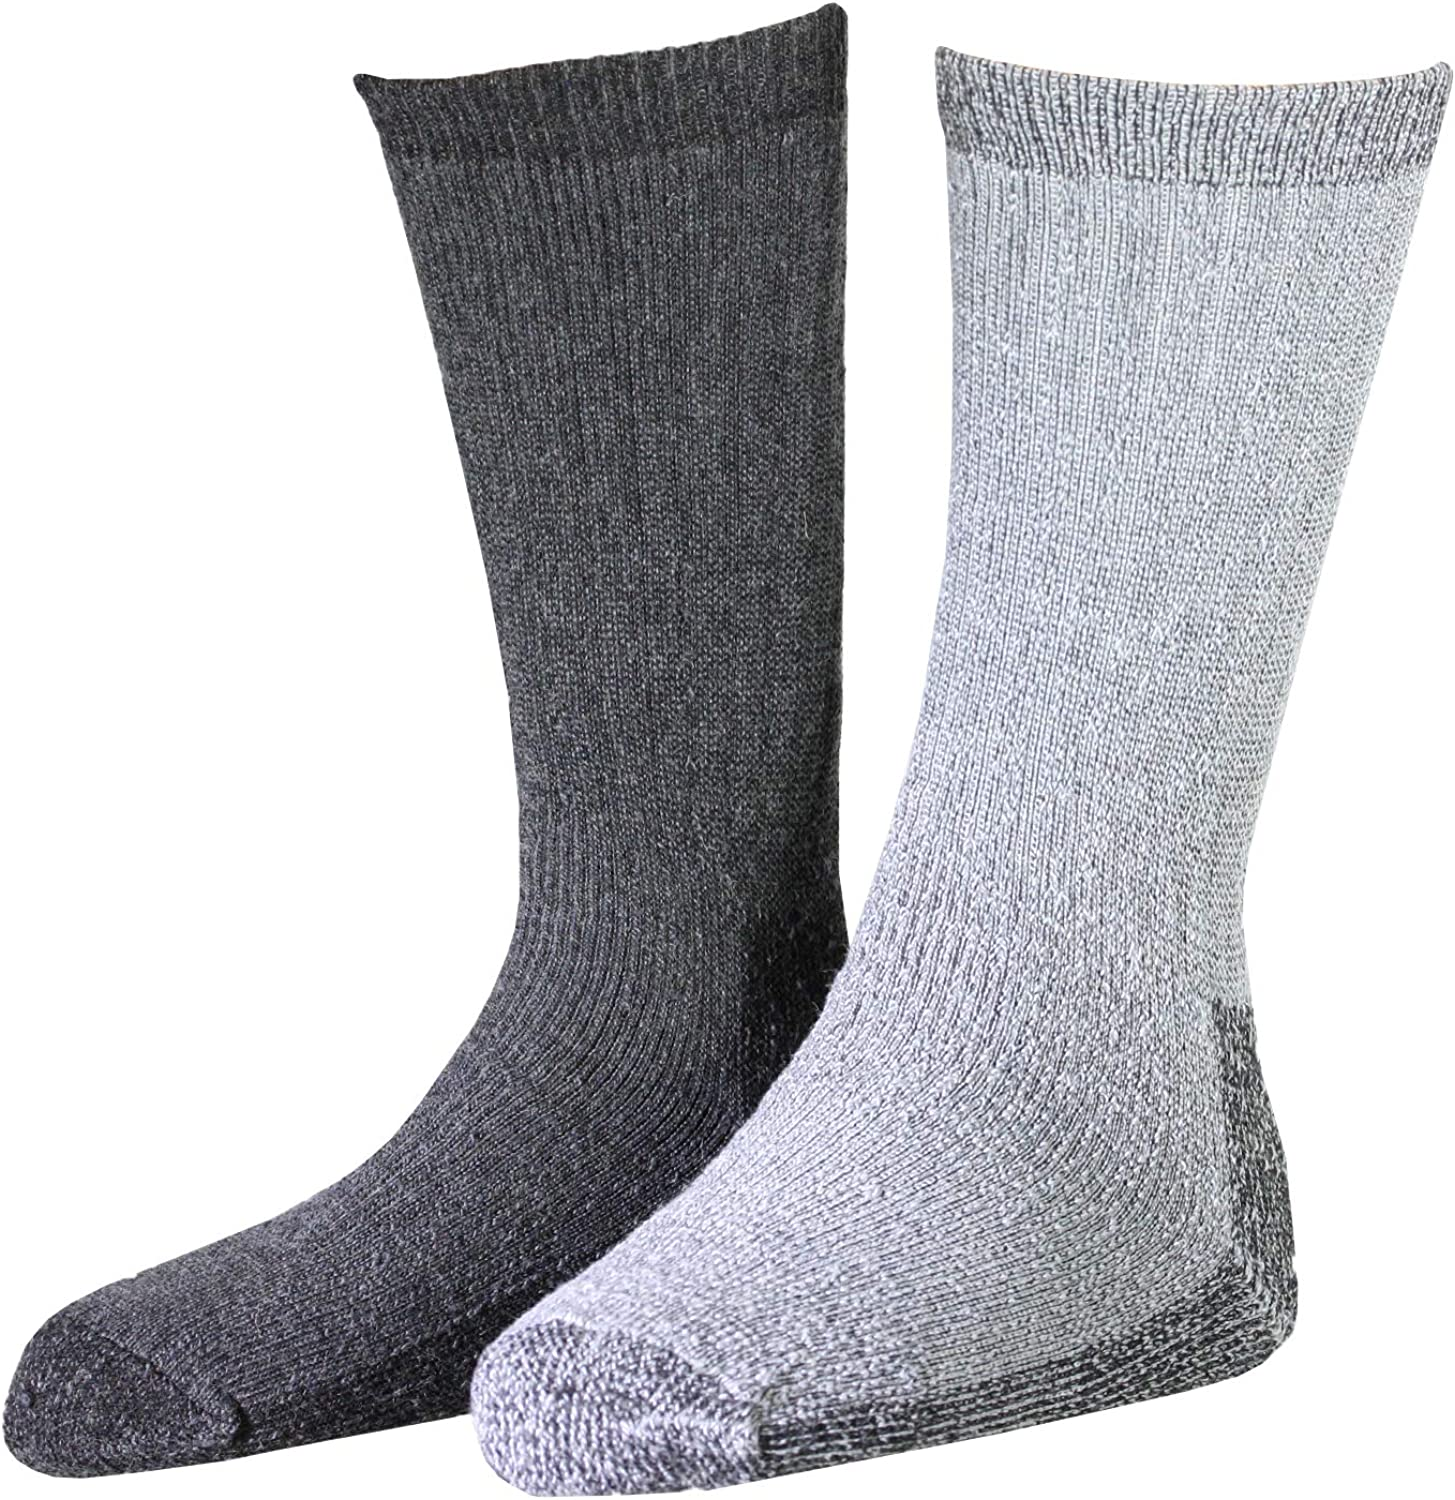 Woolrich Men's Ultimate Merino Wool Socks (2 Pr), Super Thick